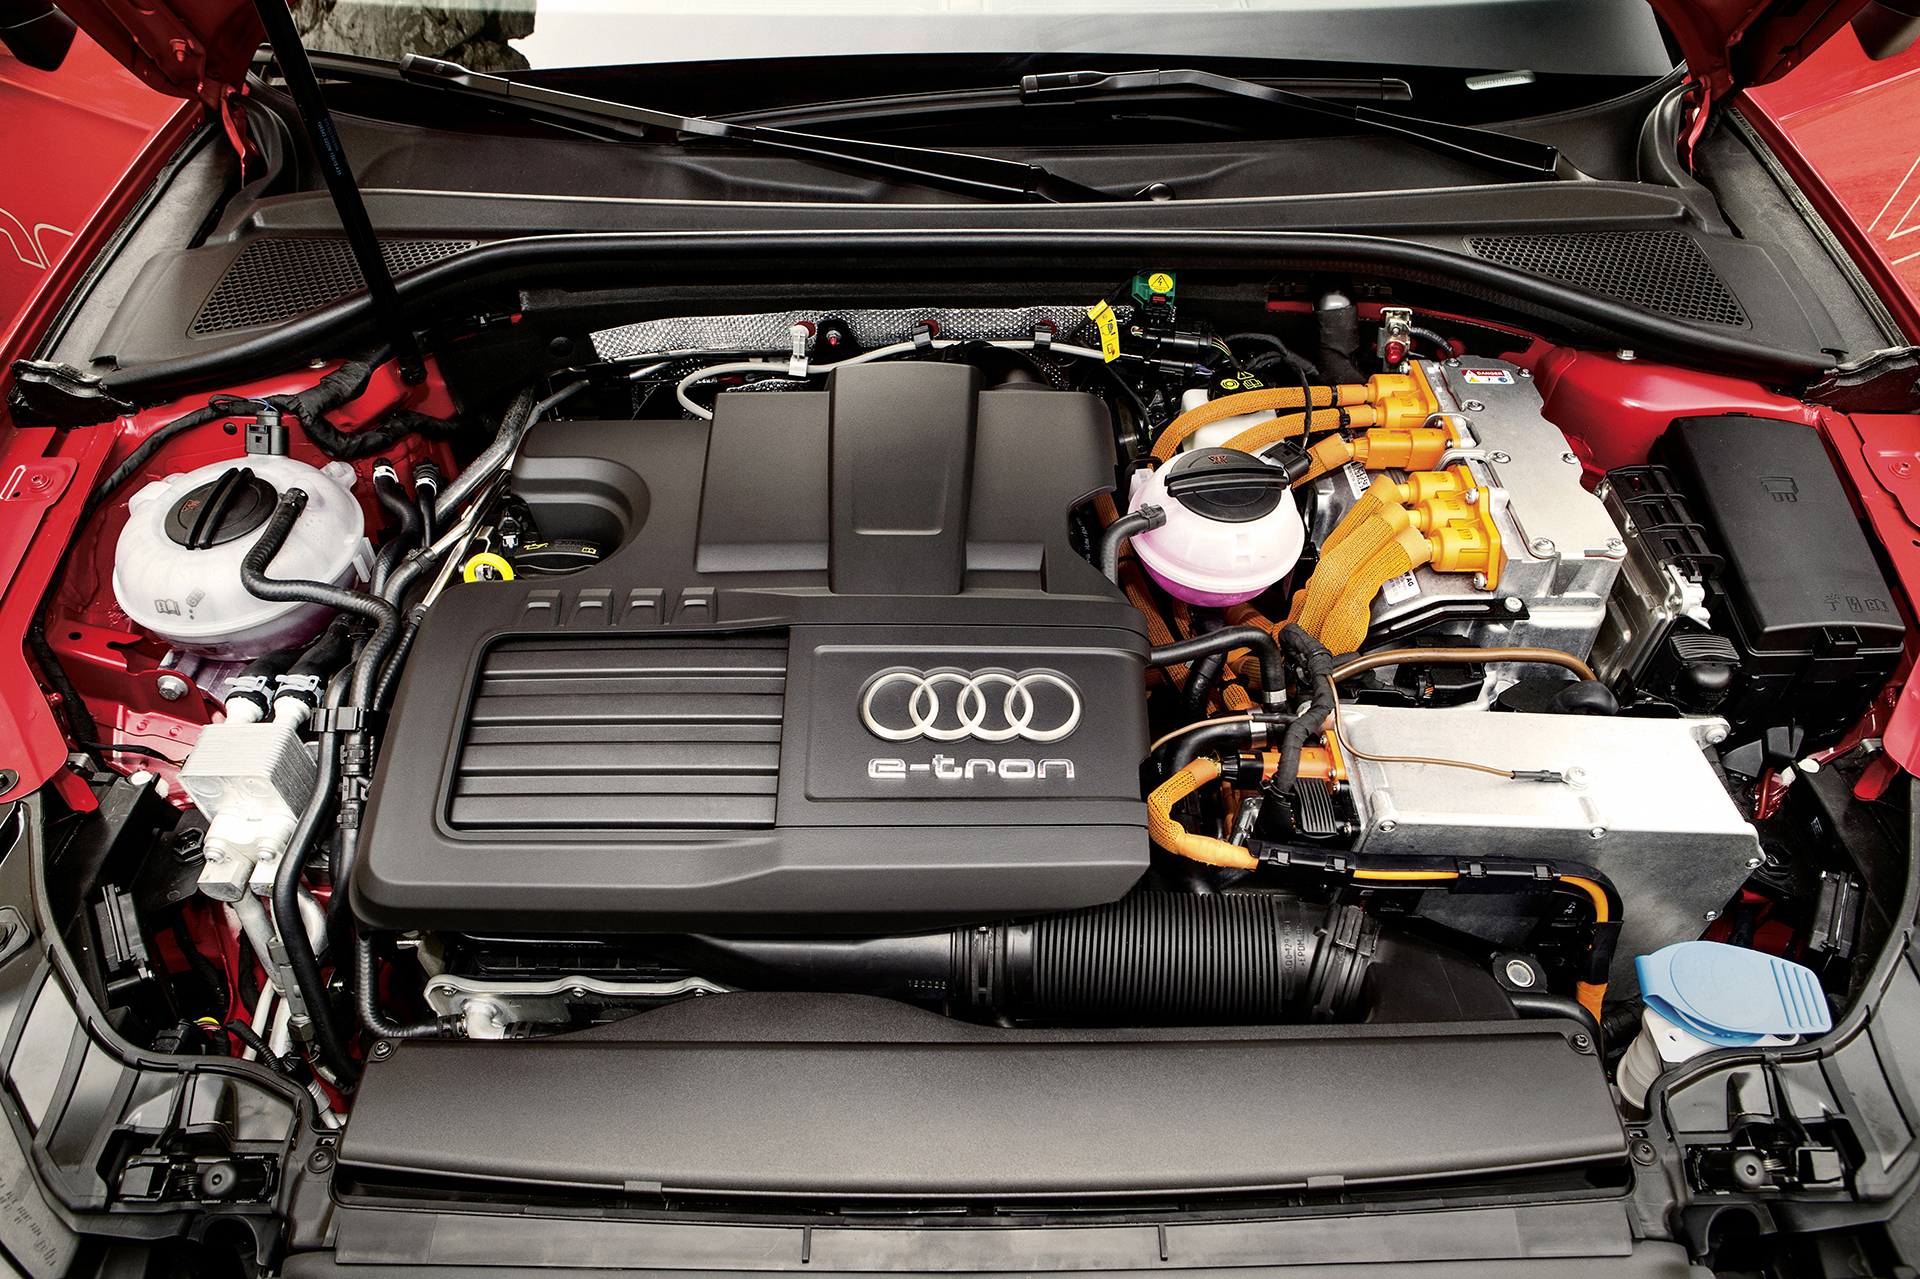 Audi A3 e-tron - under the hood / sous le capot